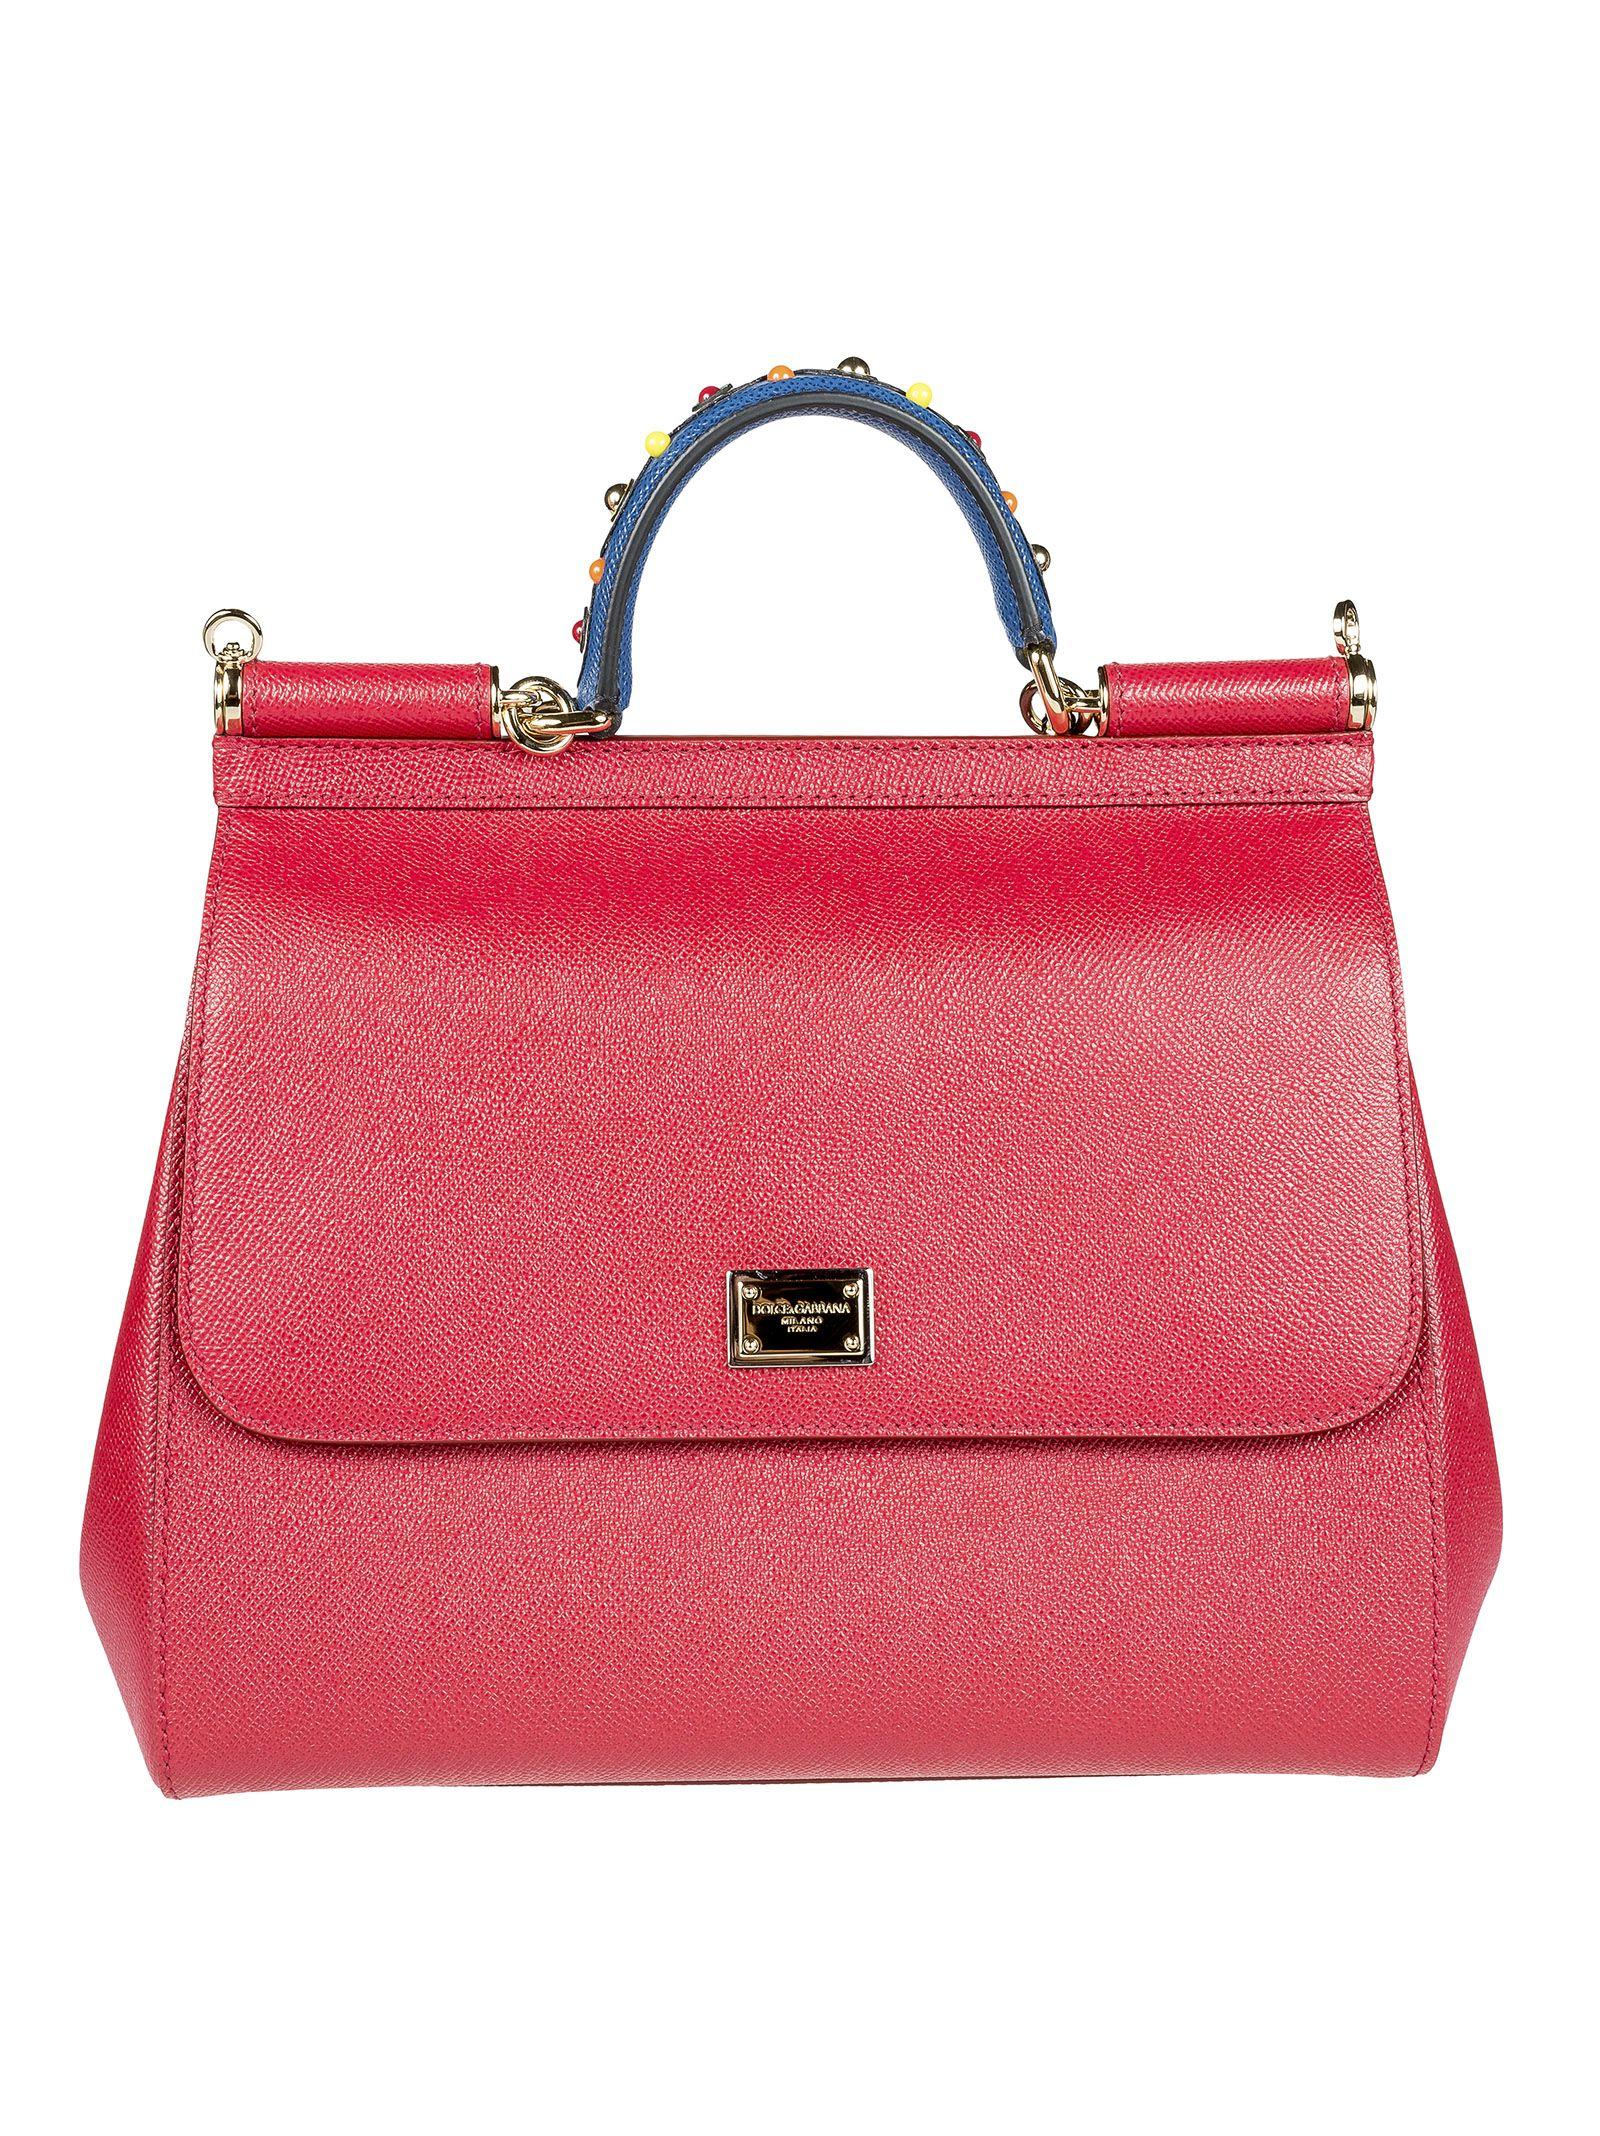 Dolce & Gabbana Large Sicily Tote In Red